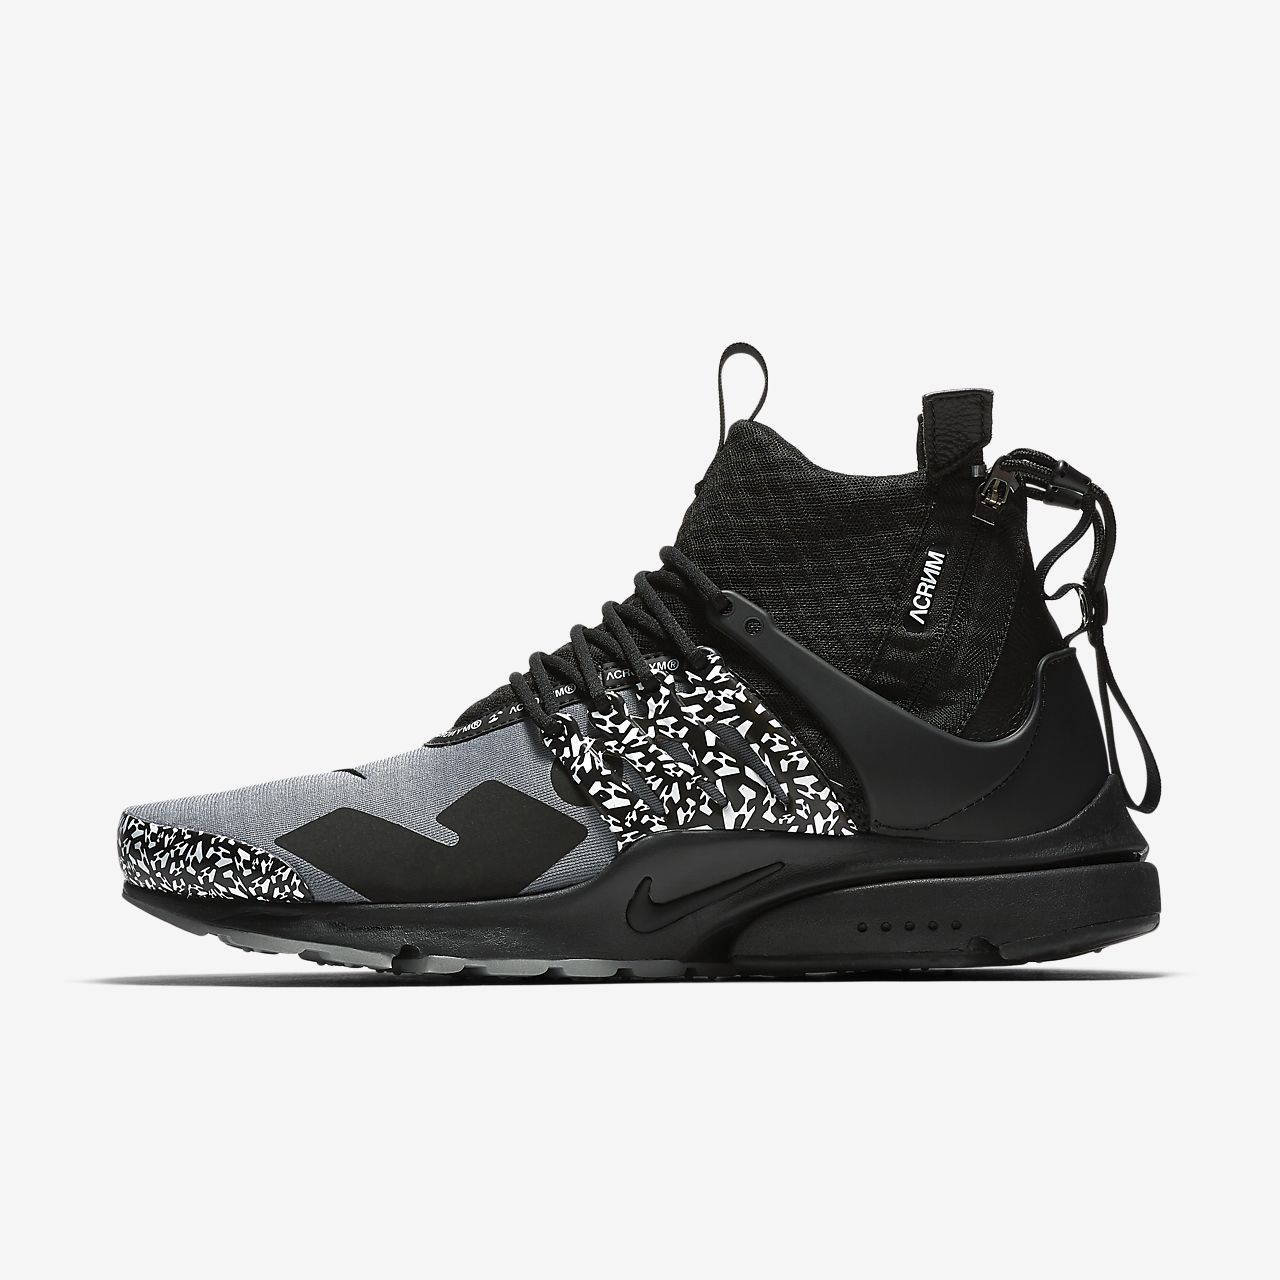 new arrival c5239 9f947 ... Nike Air Presto Mid SP x Acronym Mens Shoe